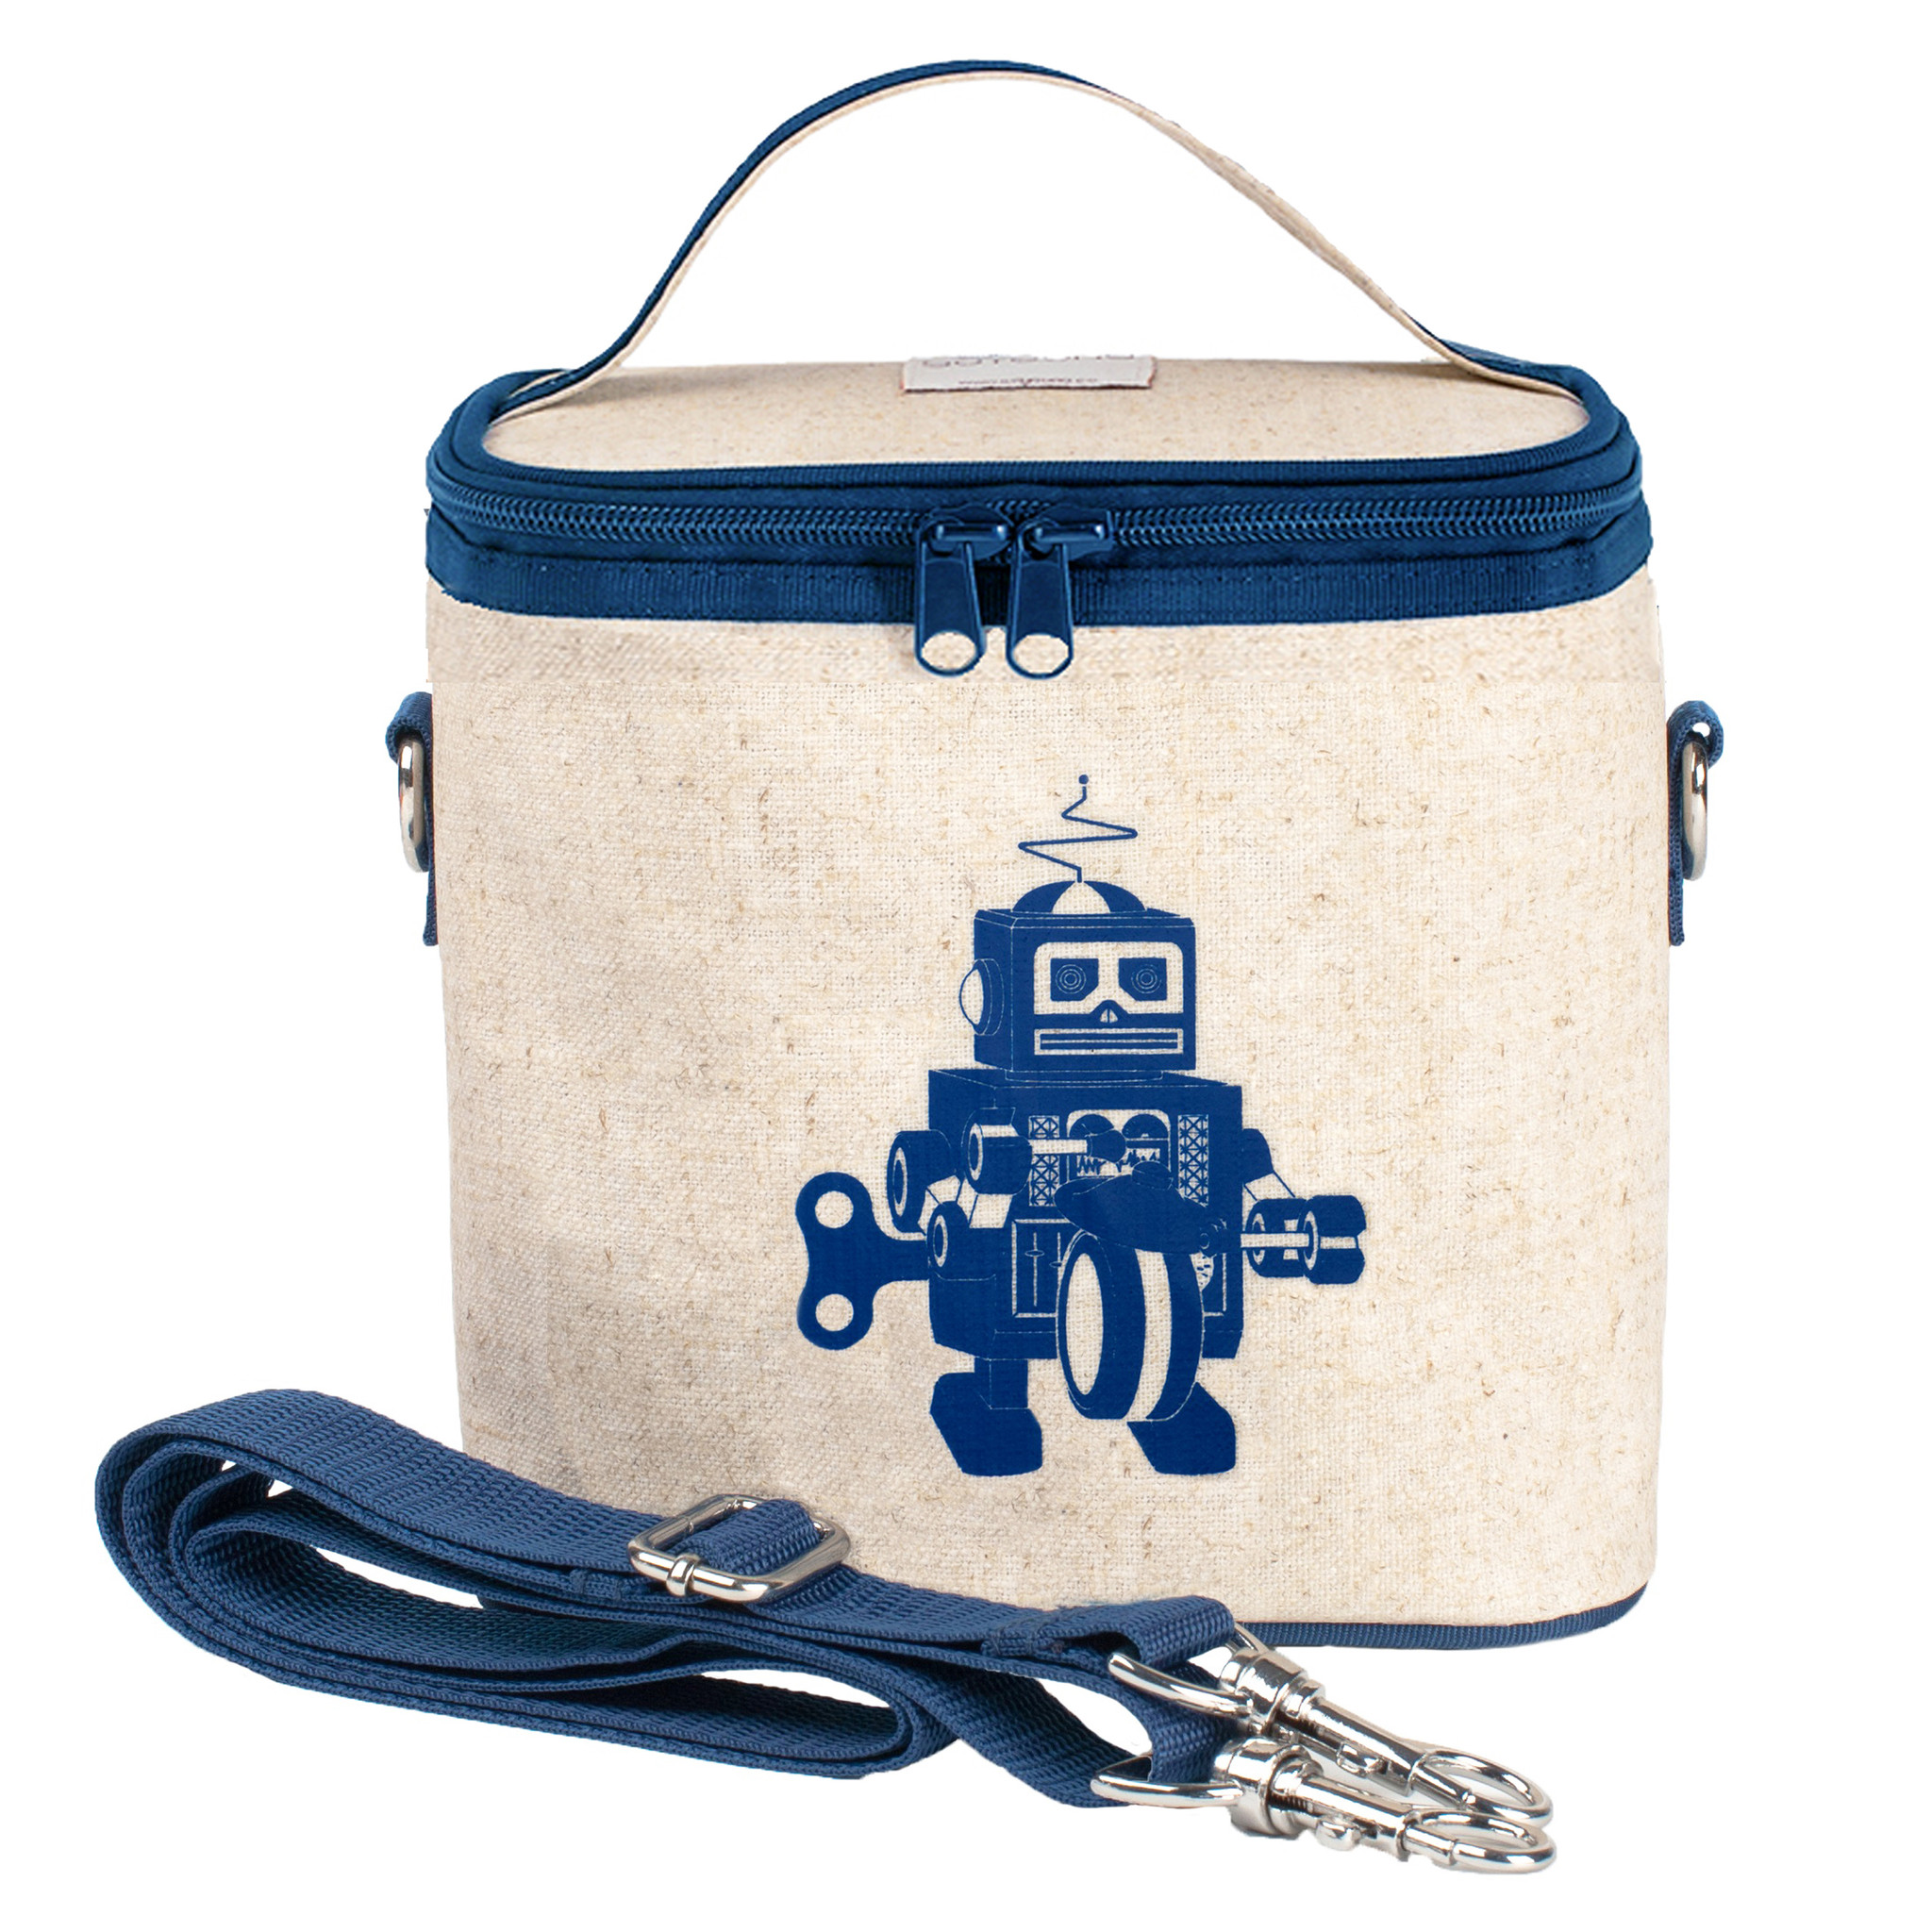 So Young Insulated Lunch Bag Box Small Cooler Bag - Blue Robot d646f1b5e6663